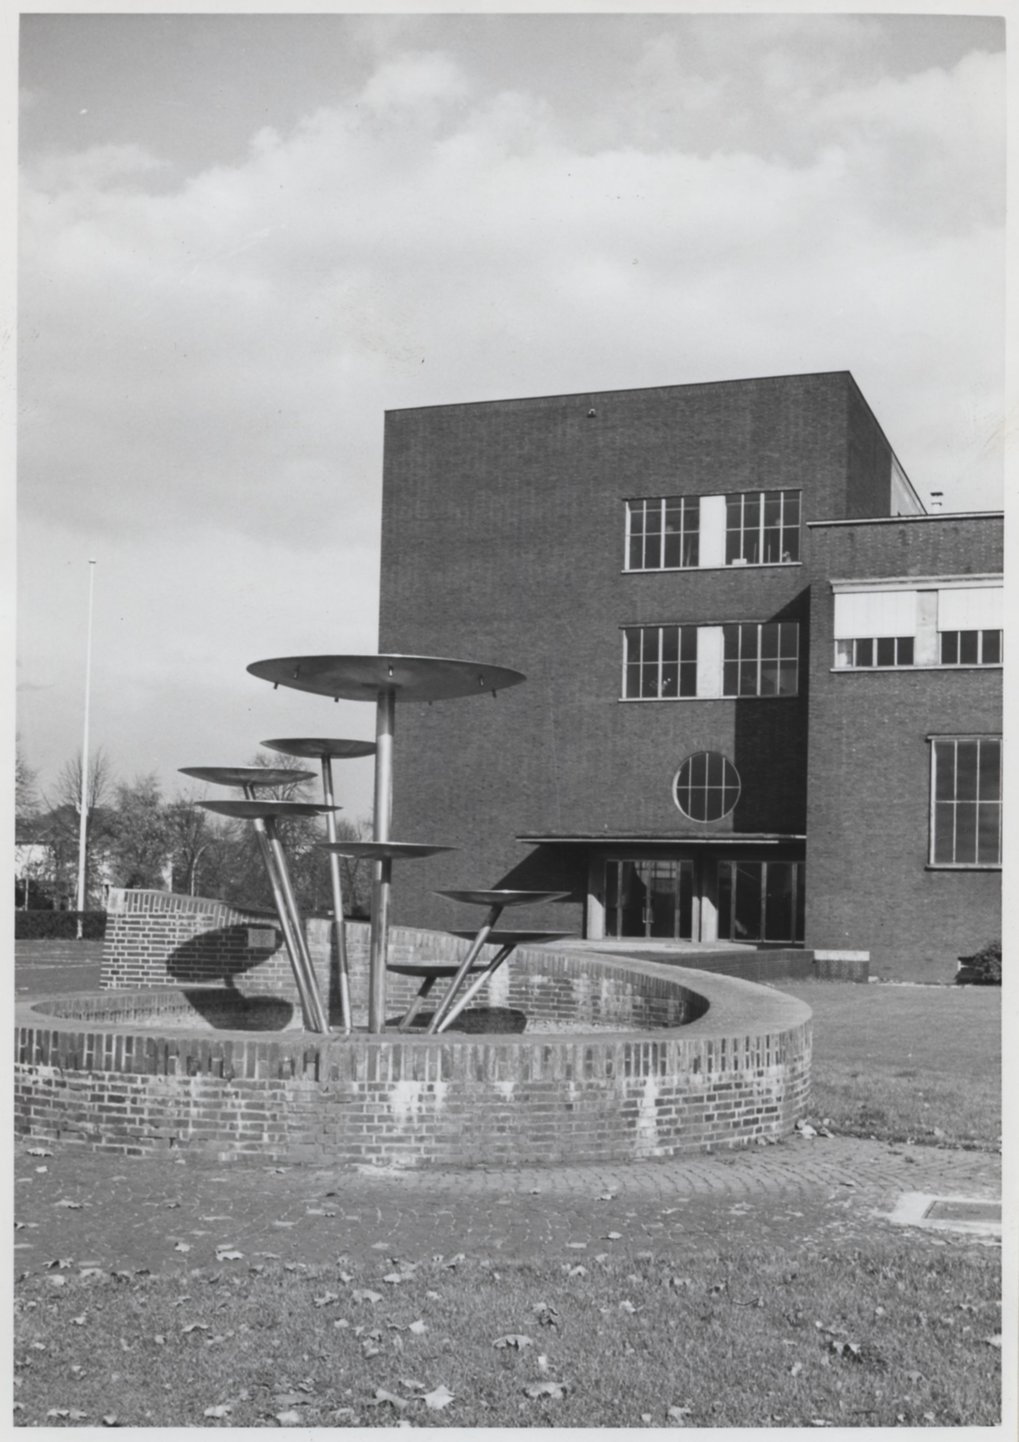 A view of the MPIE's main building in November 1962.